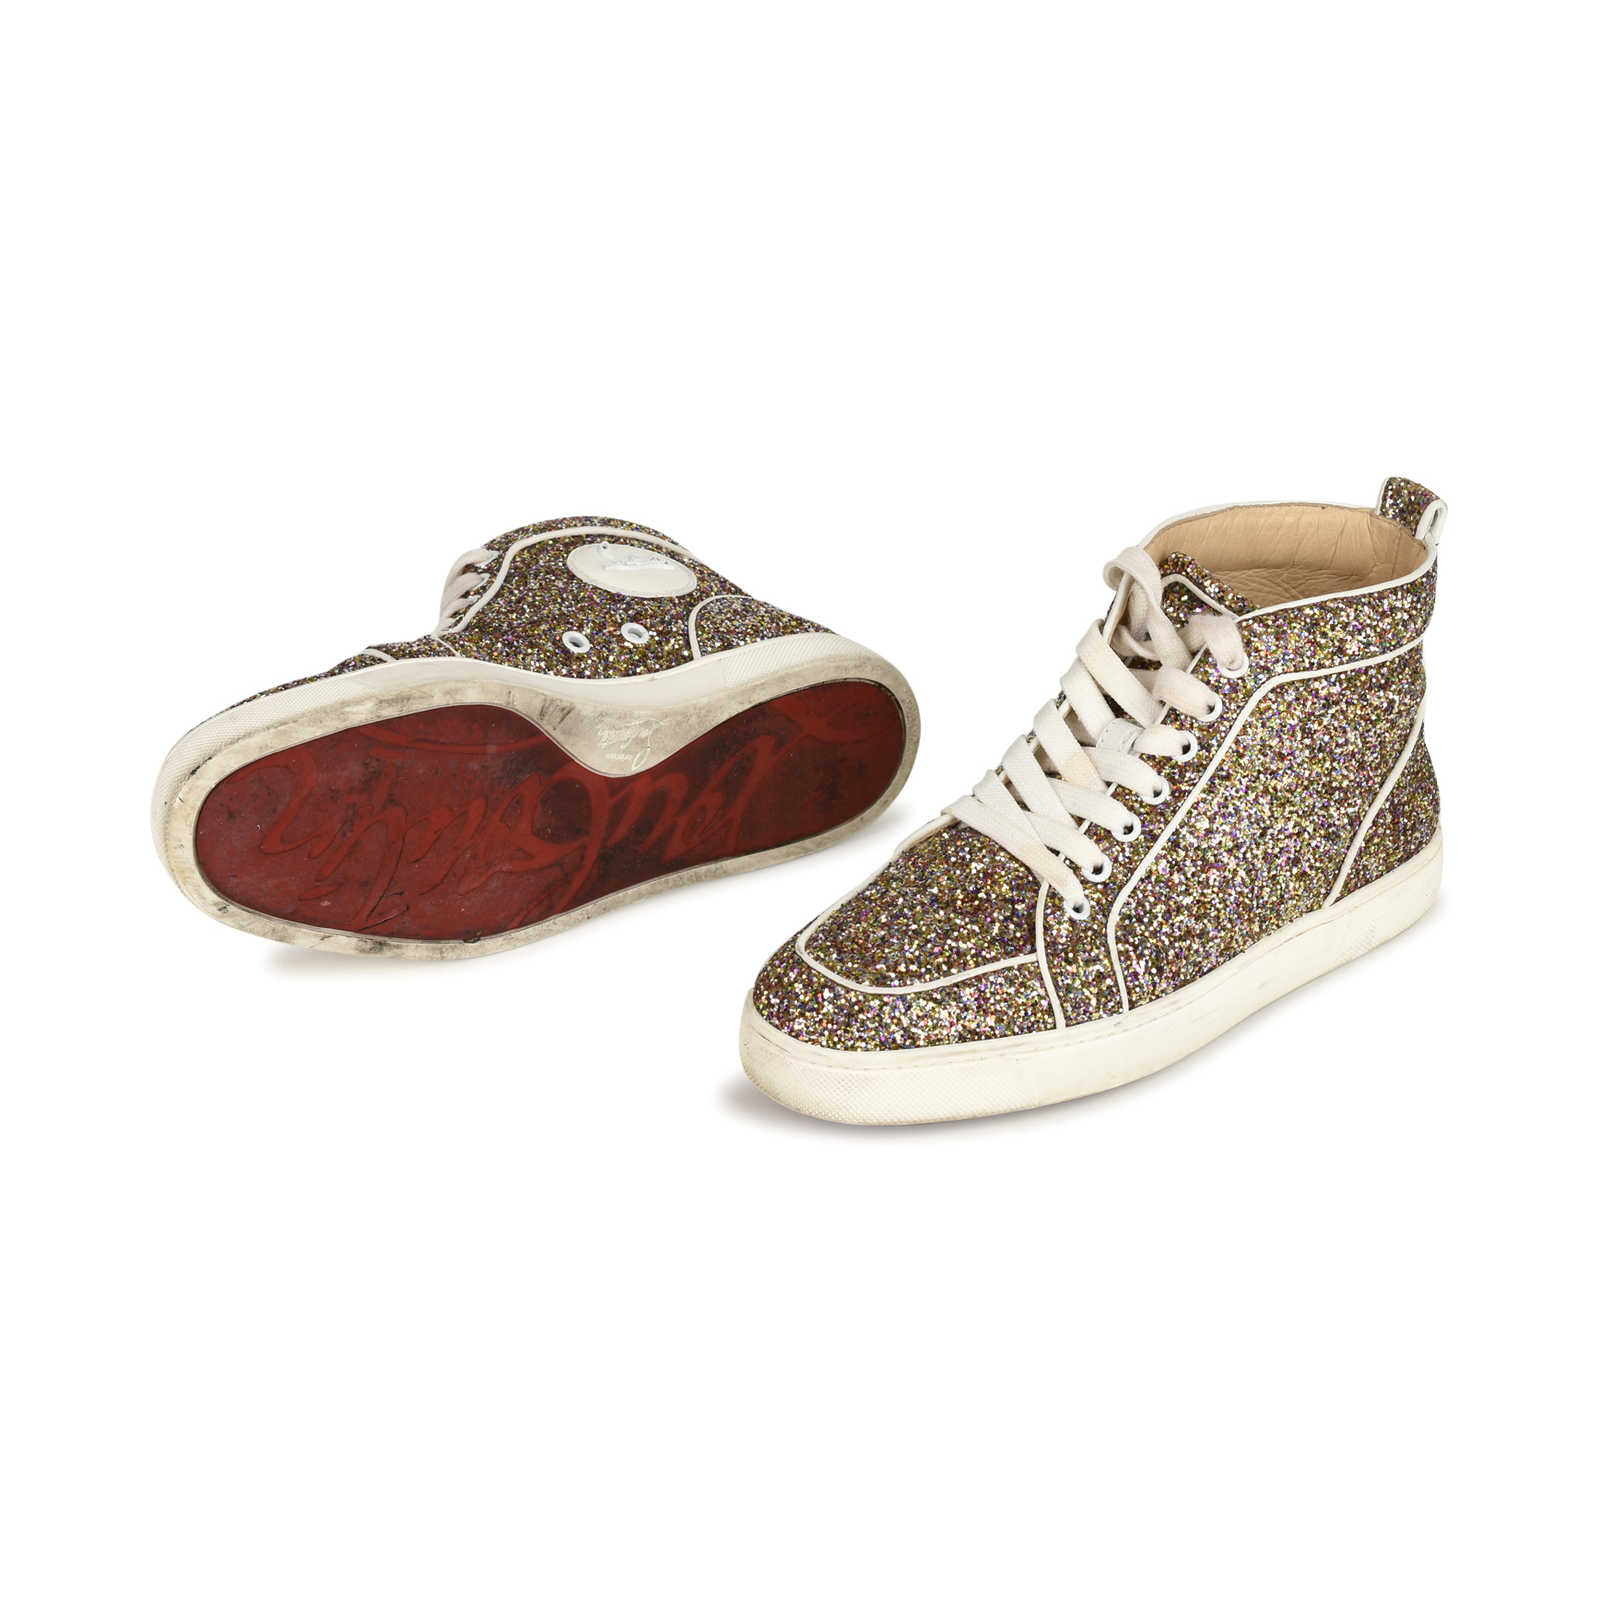 new products e806c 0f4a5 Authentic Second Hand Christian Louboutin Rantus Orlato ...